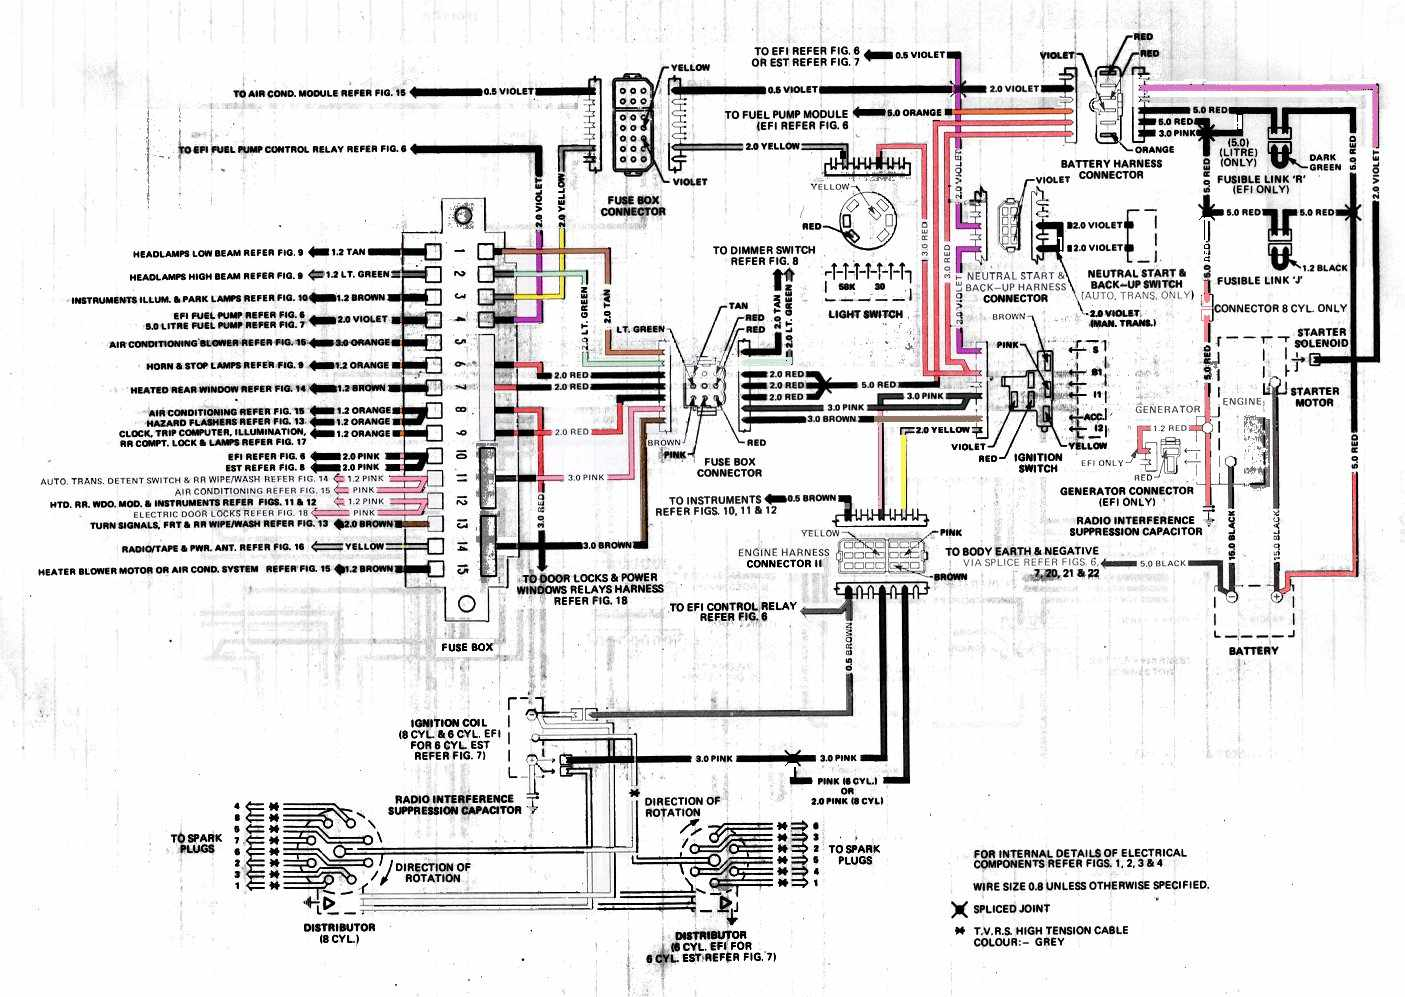 Boat Gas Tank Wiring Diagram in addition Car Fuel Gauge Wiring Diagram together with 95 Tahoe Fuel Sender Wiring Diagram together with Evinrude Parts Diagram Free Download Wiring Schematic besides Vdo Oil Pressure Wiring Diagrams. on boat fuel sending unit diagram